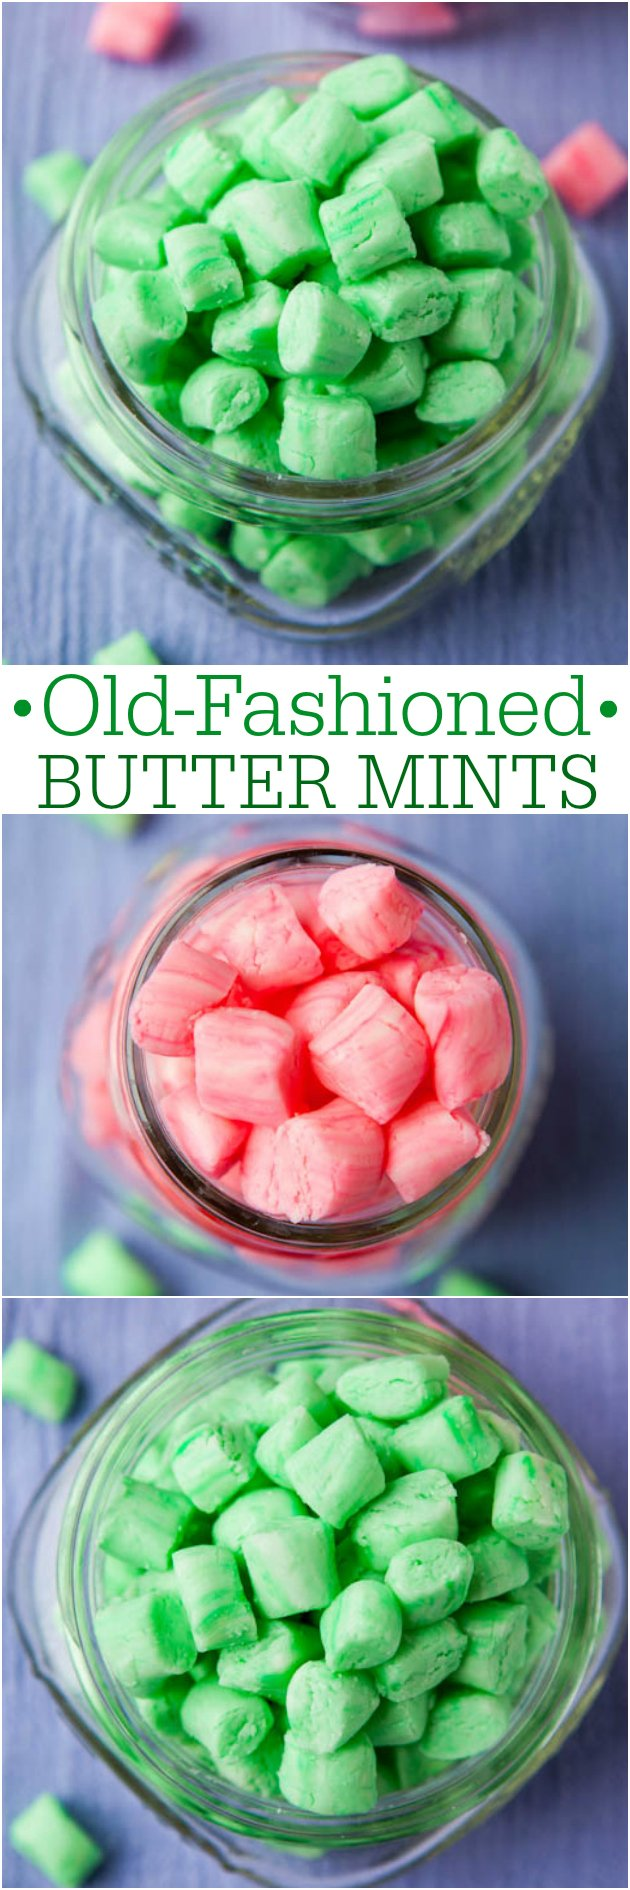 Old-Fashioned Butter Mints in jars